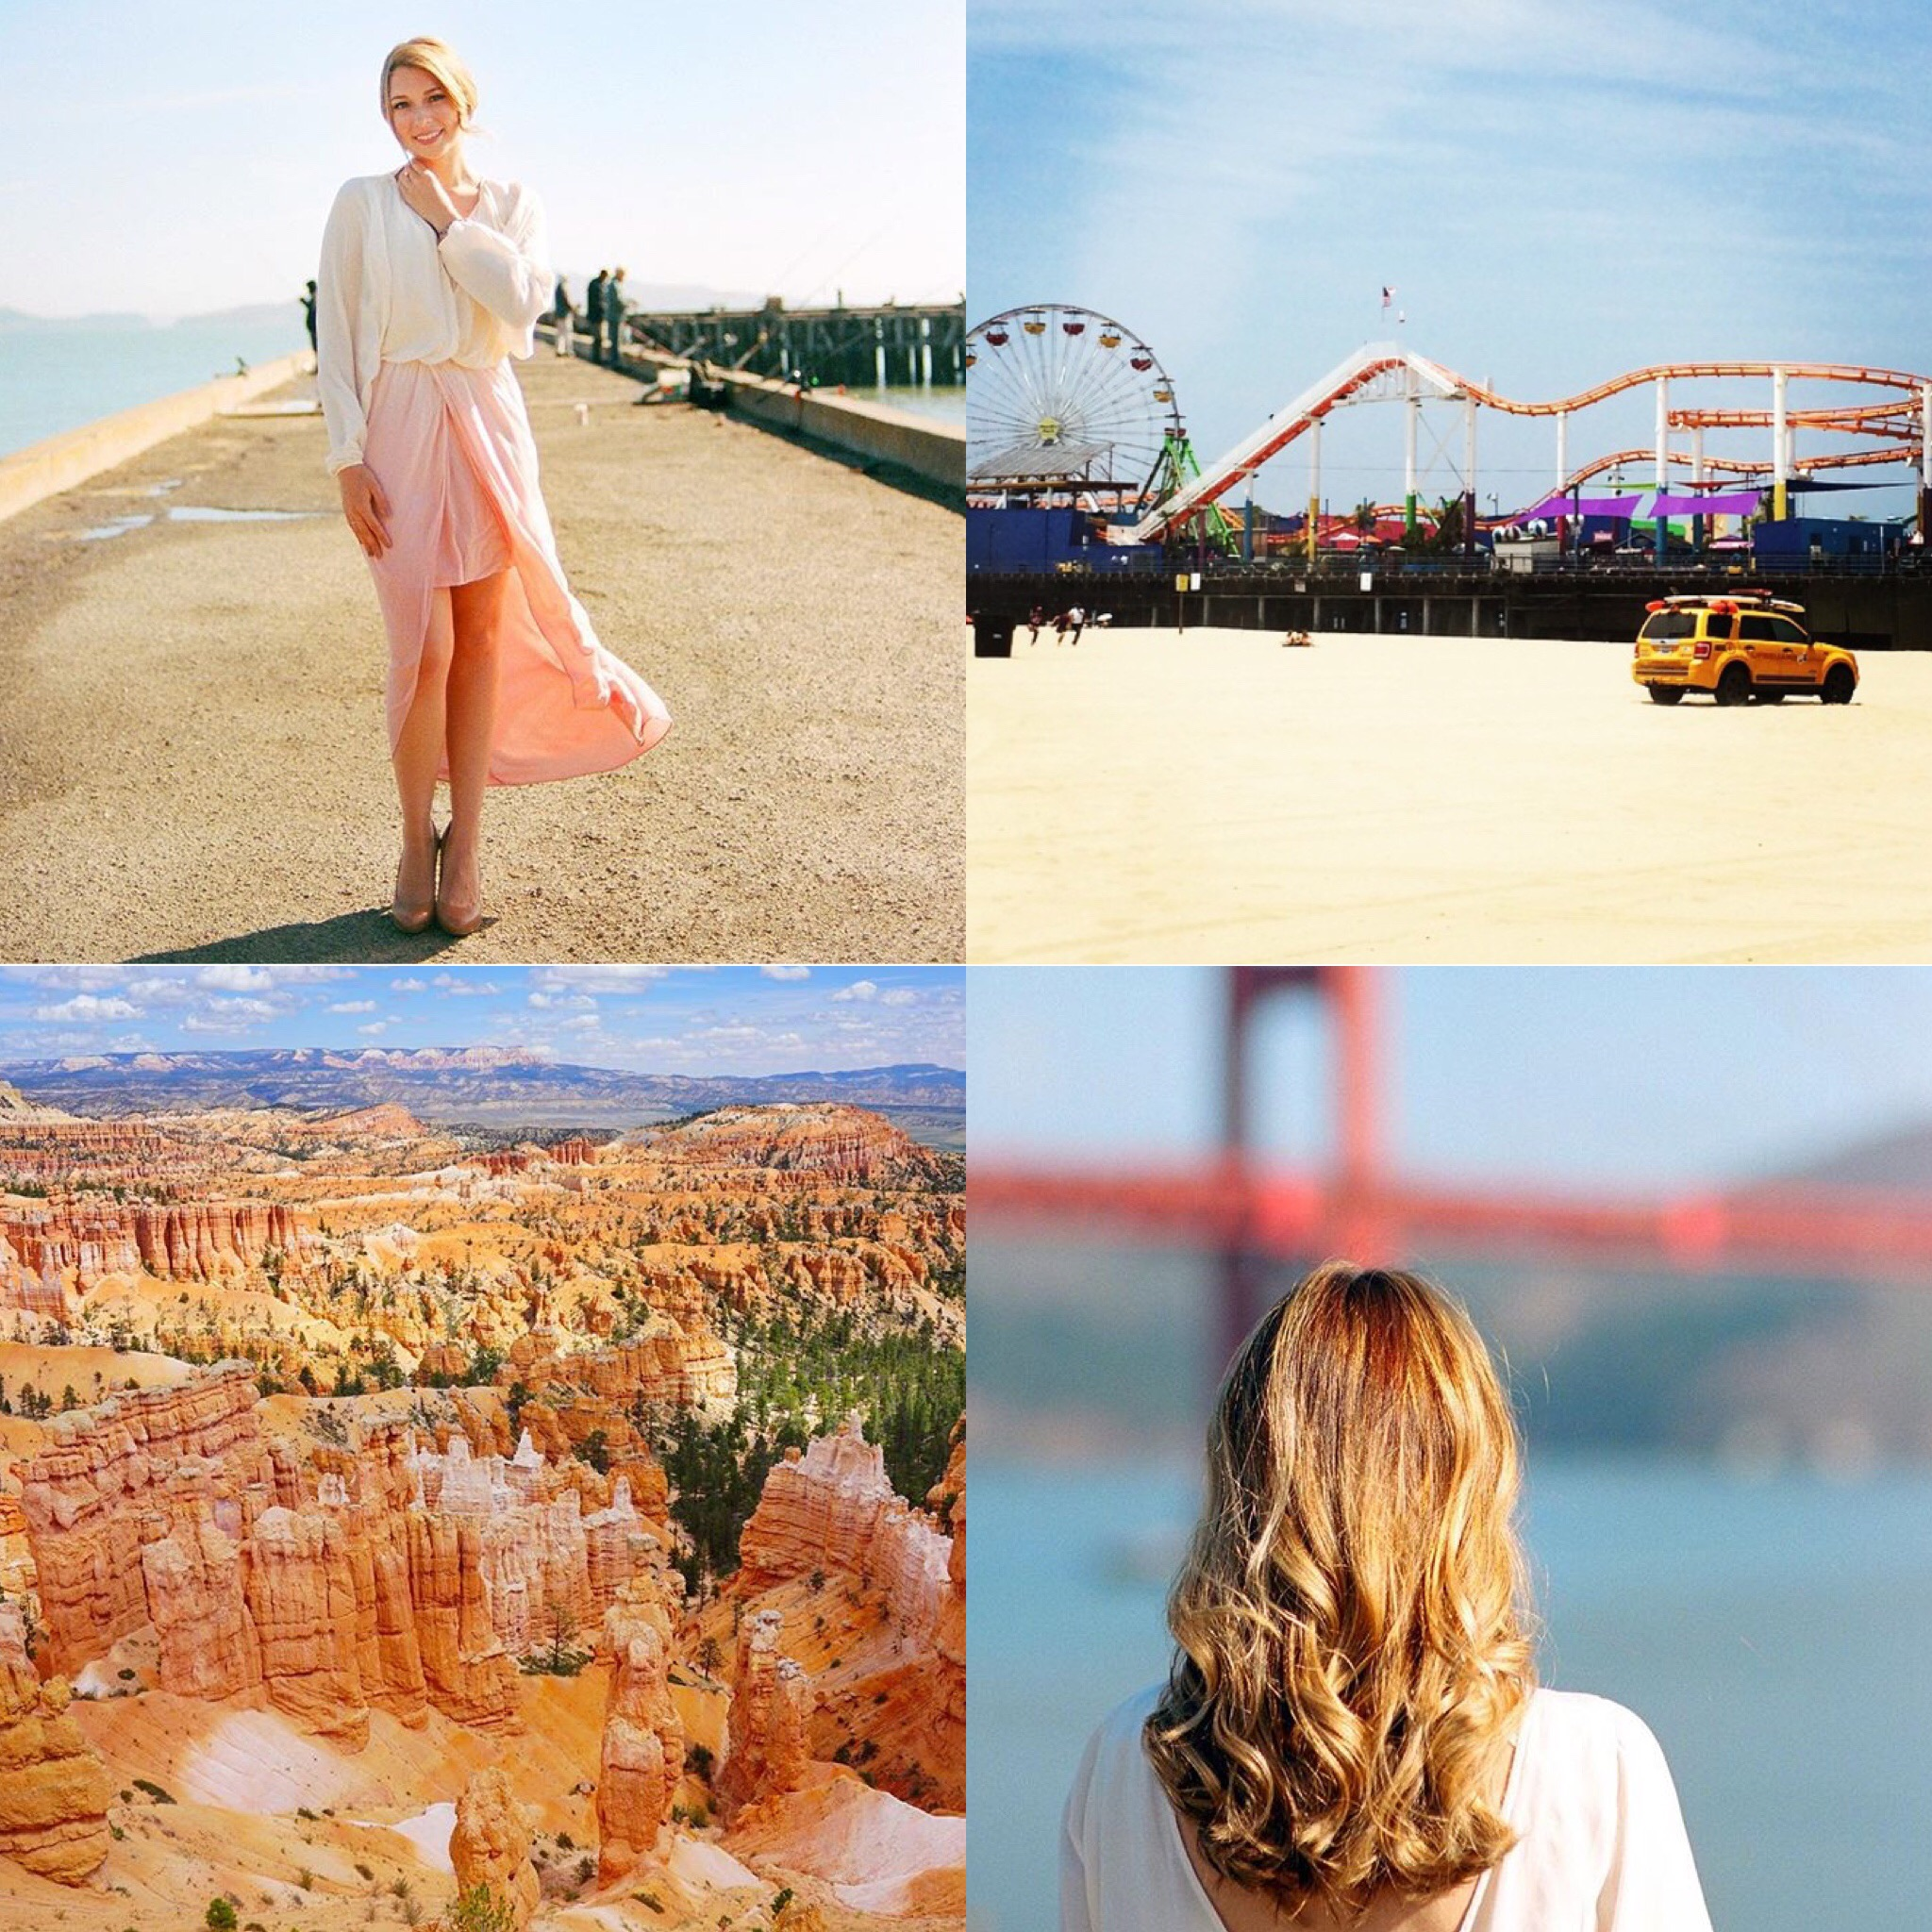 15 Instagram Travelers Who's Feeds Will Soothe Your Wanderlust | @https://www.instagram.com/tami_villa/